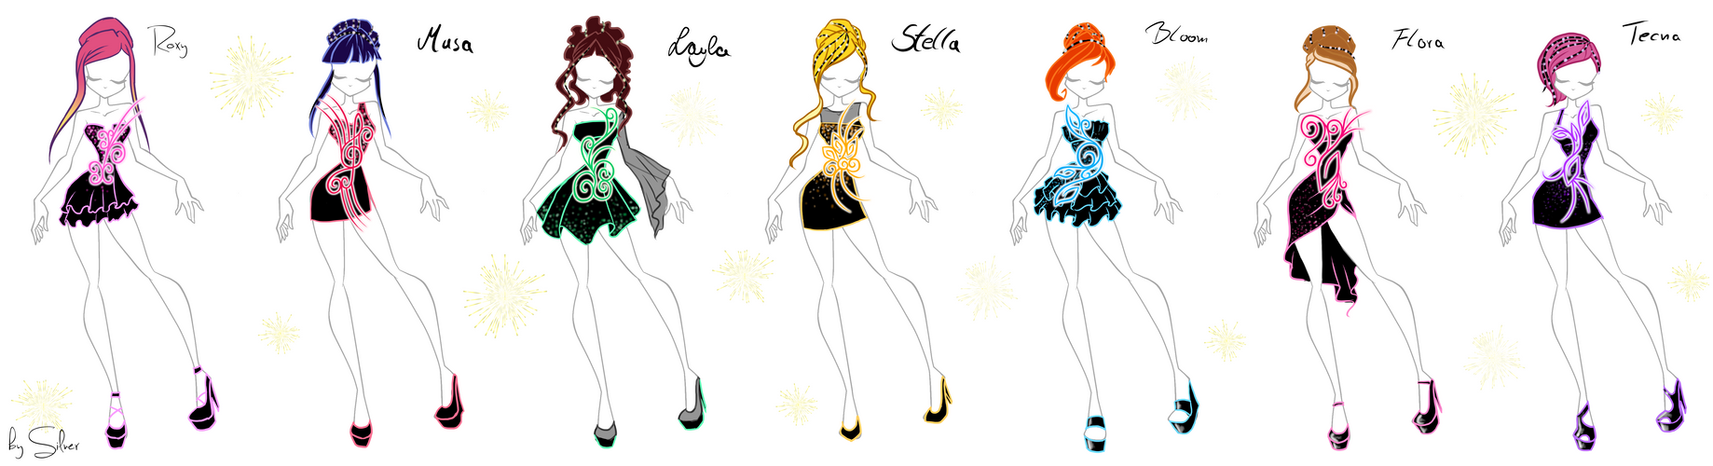 winx and roxy fireworkdress sketches by coloralecante